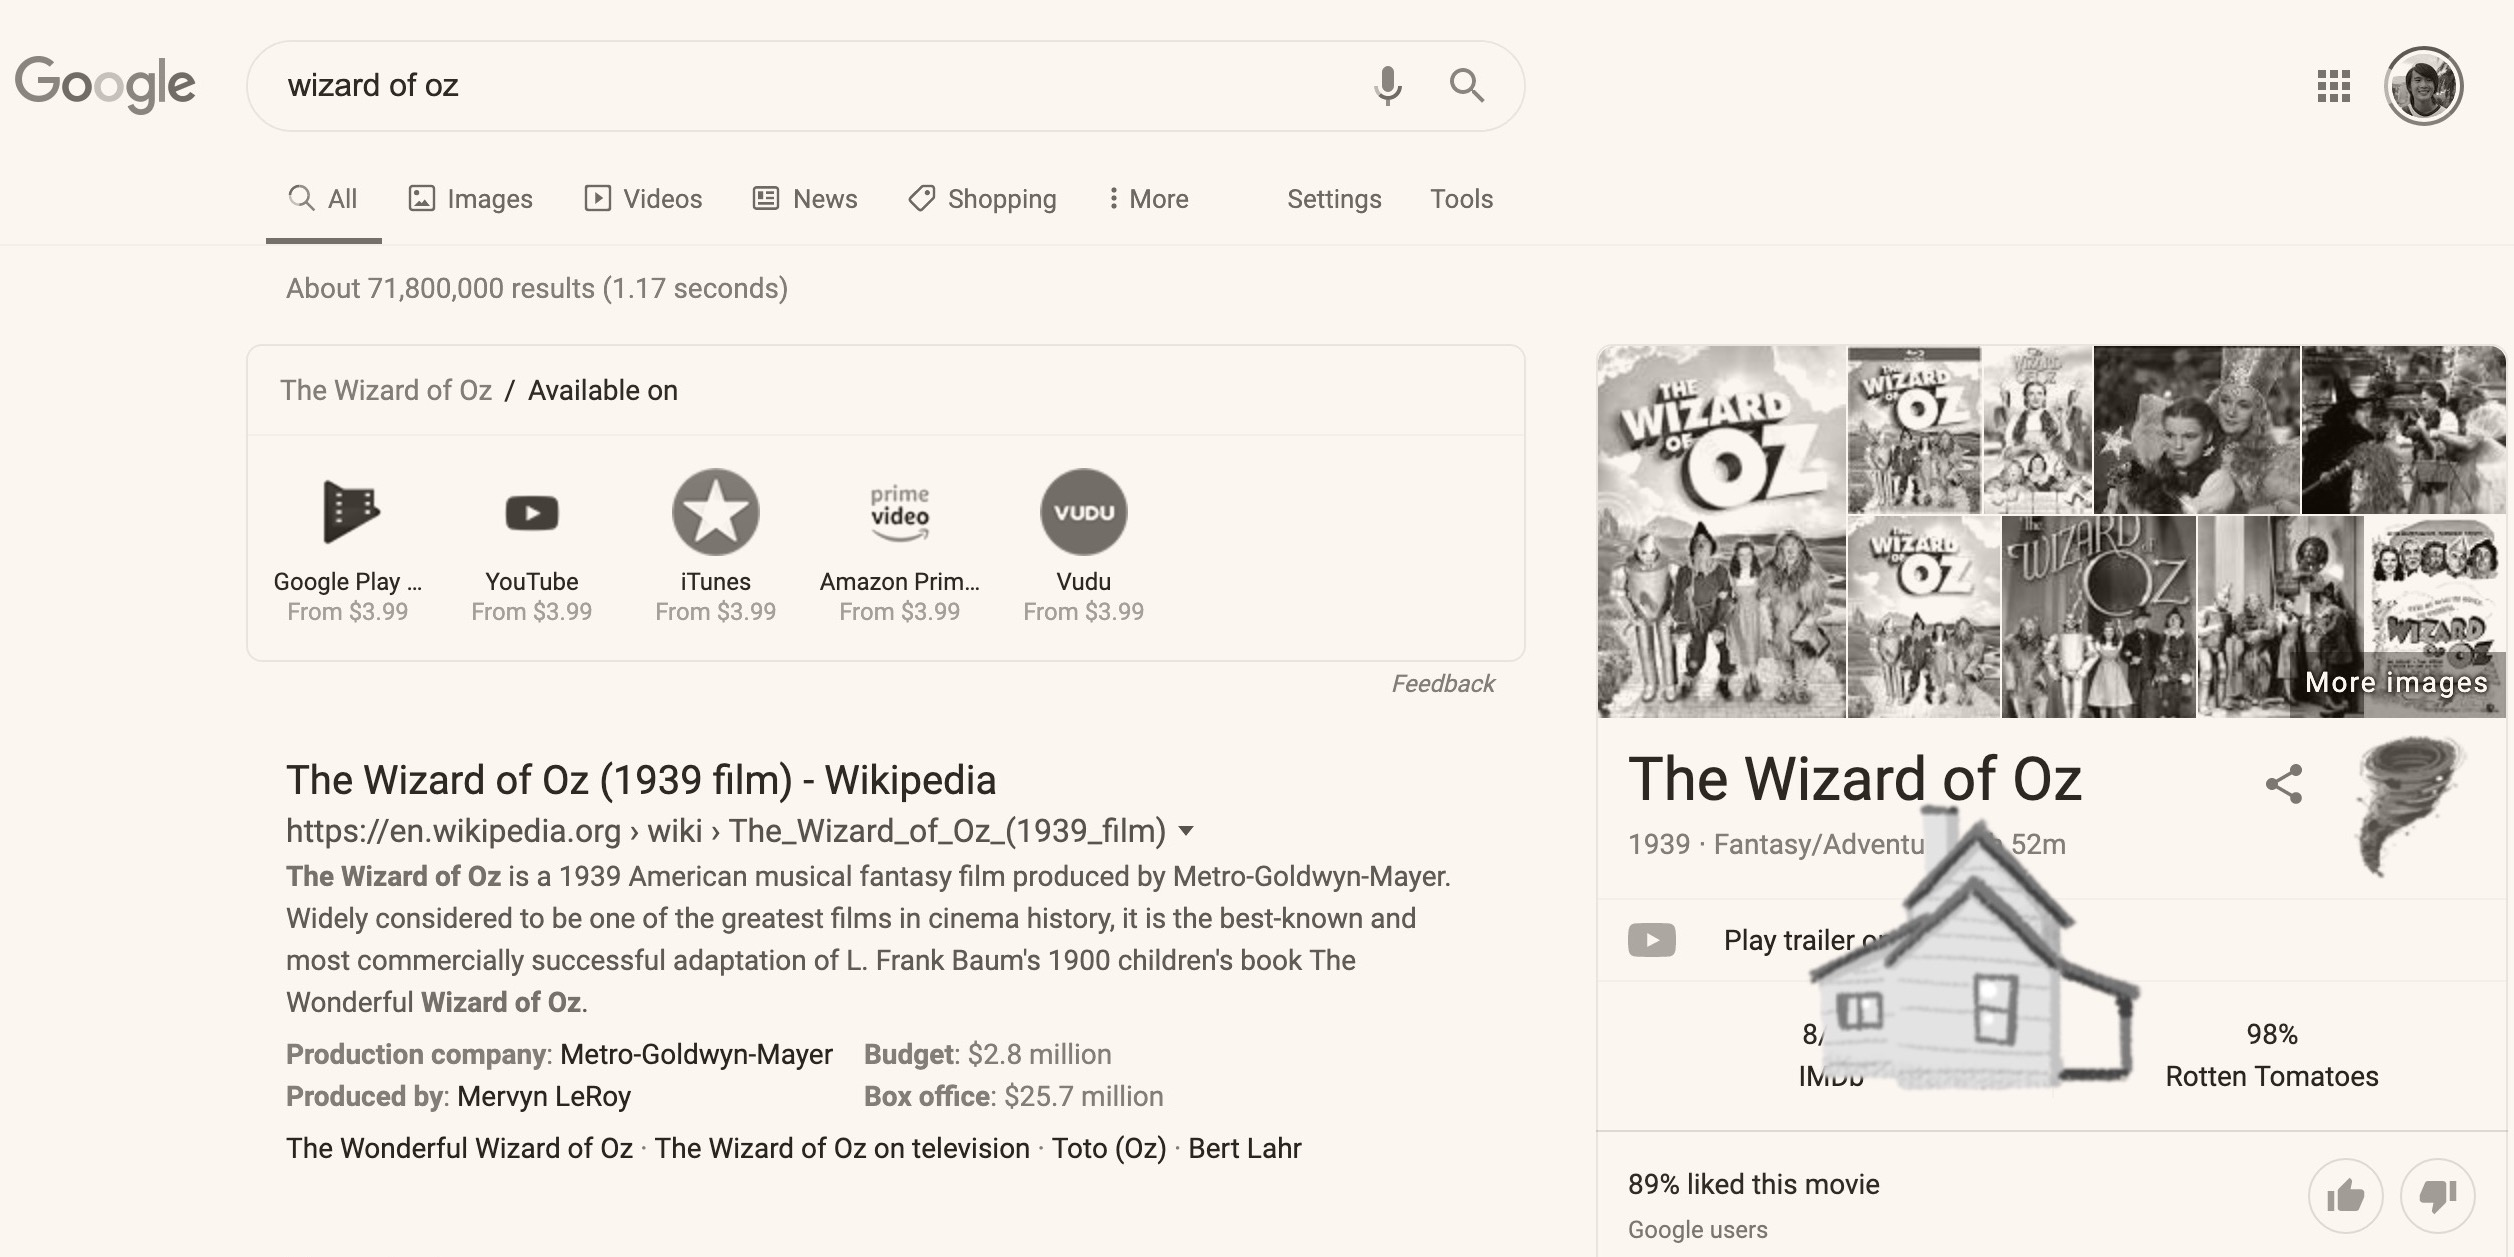 Google Search adds elaborate 'Wizard of Oz' Easter Egg for film's 80th anniversary